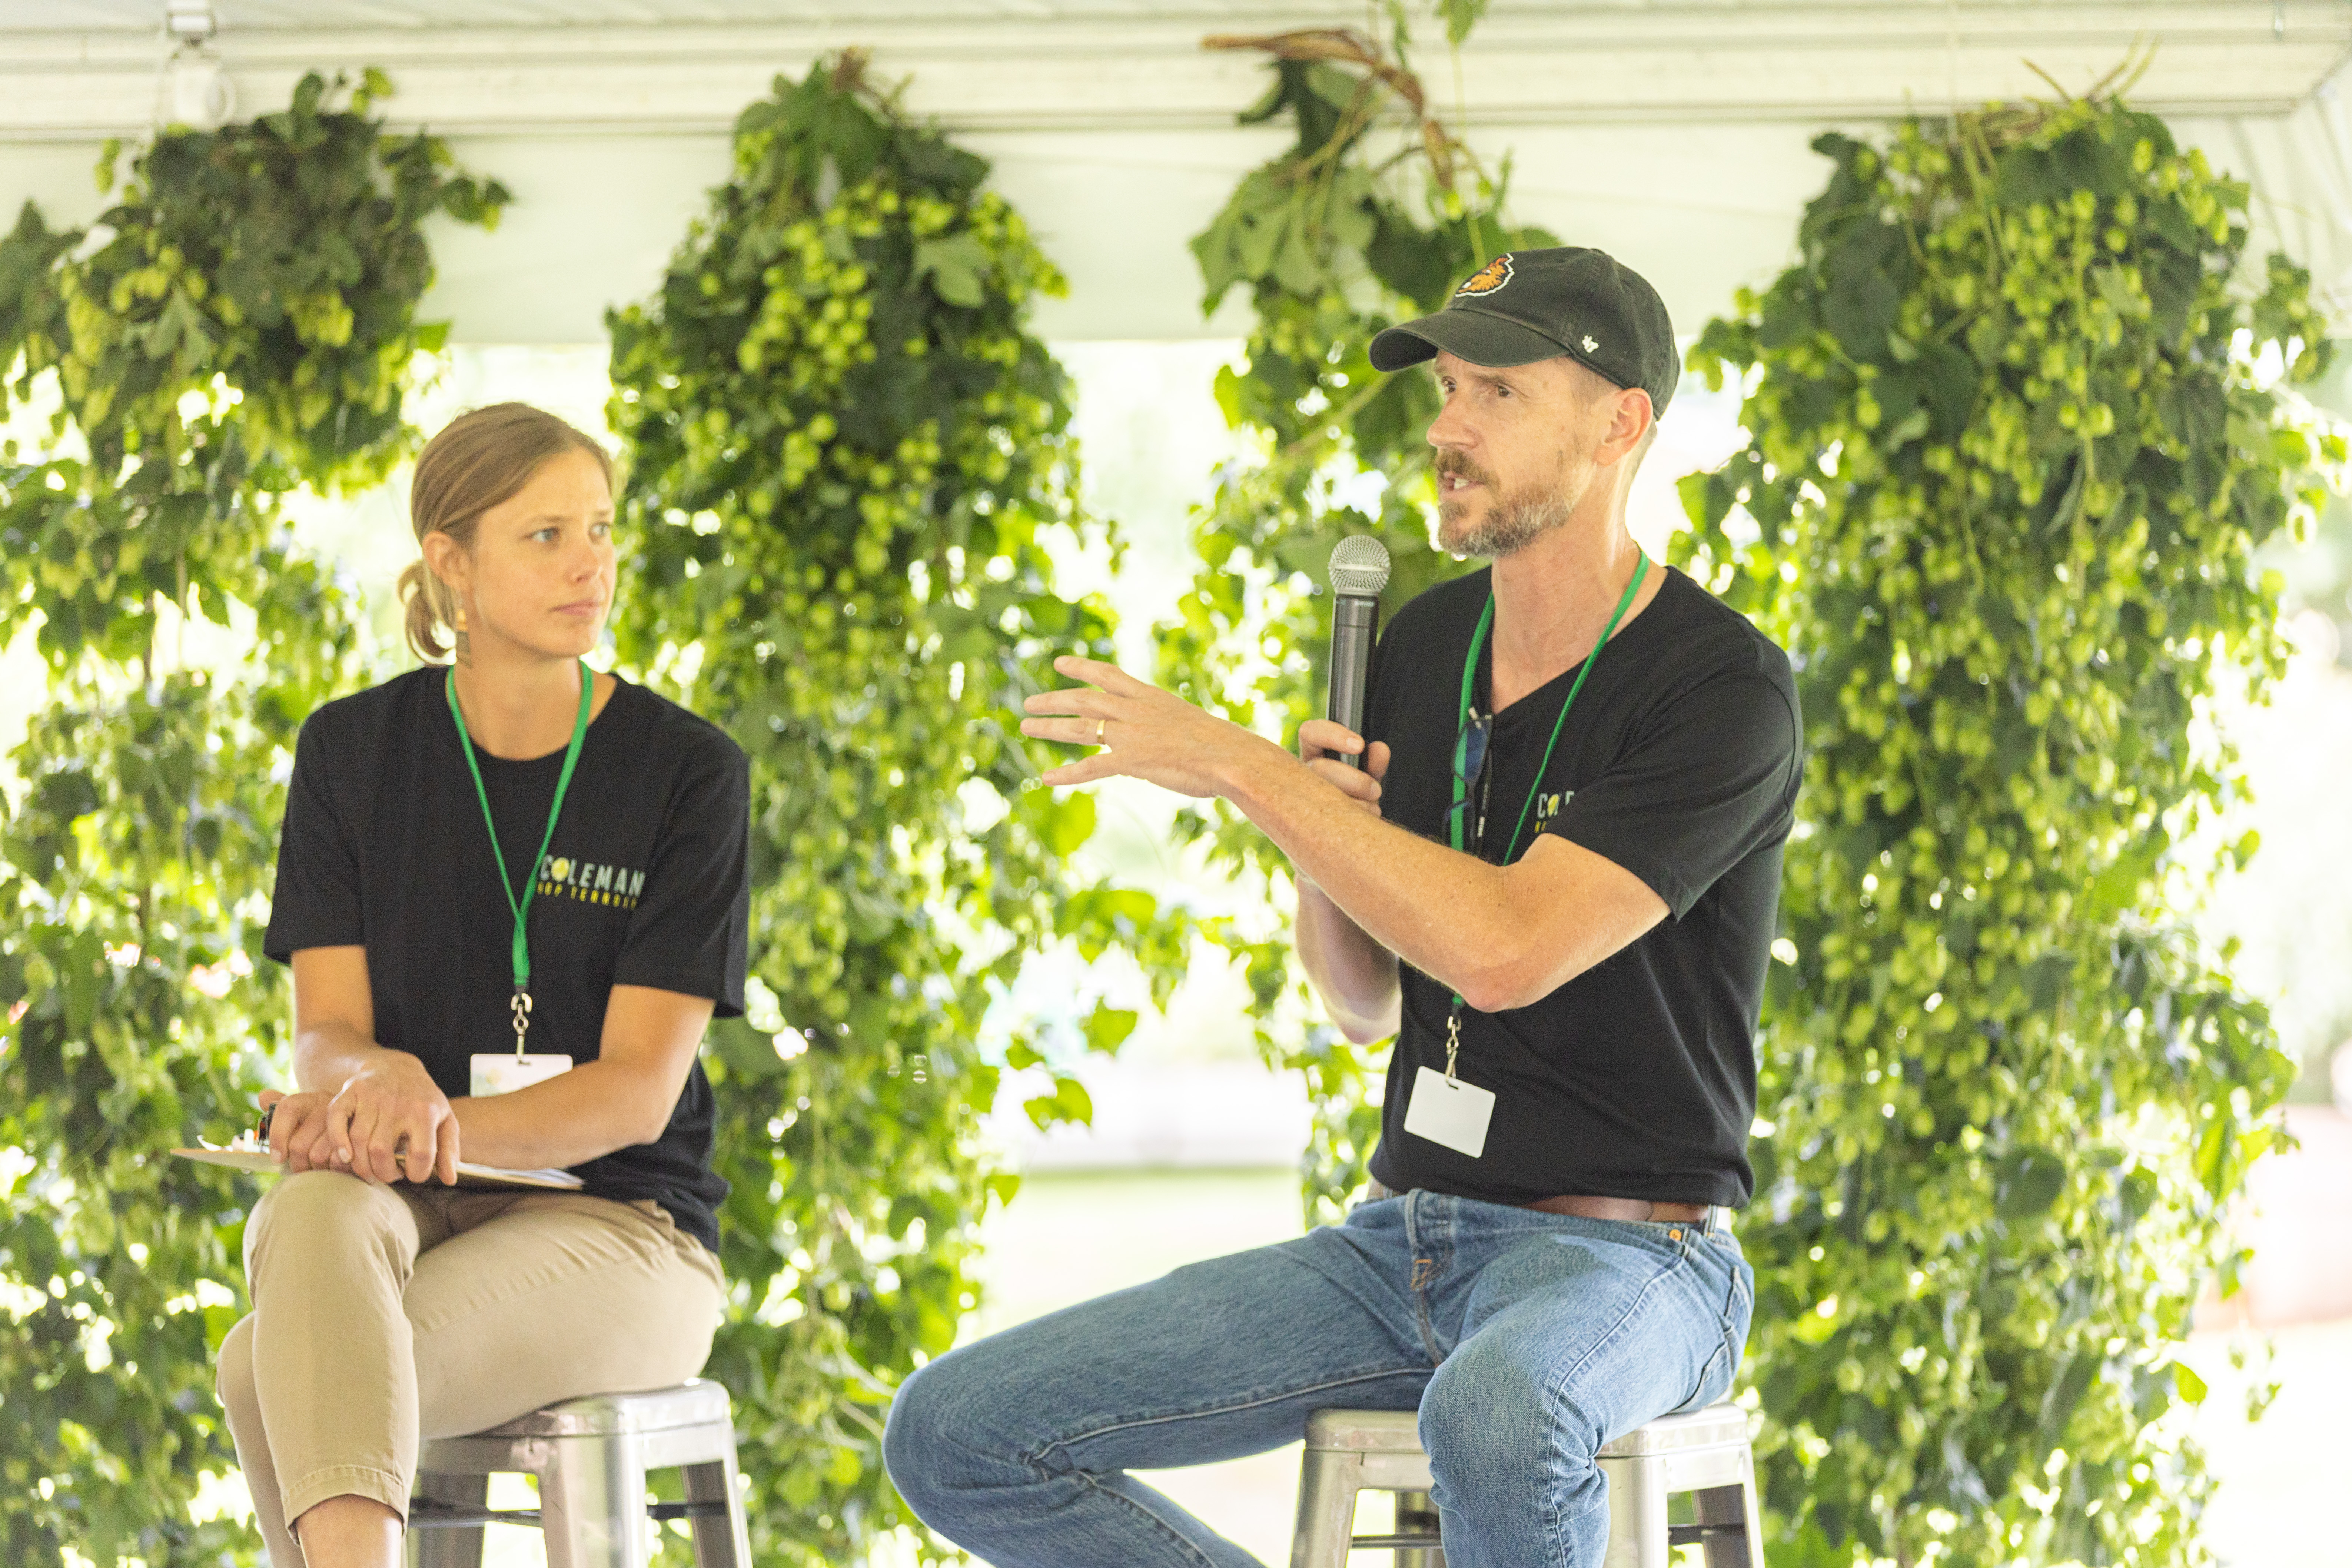 Coleman Agriculture Hop Terroir Panelists Dr. Betsy Verhoeven and Dr. Tom Shellhammer, both from Oregon State University. (image courtesy of Coleman Agriculture)